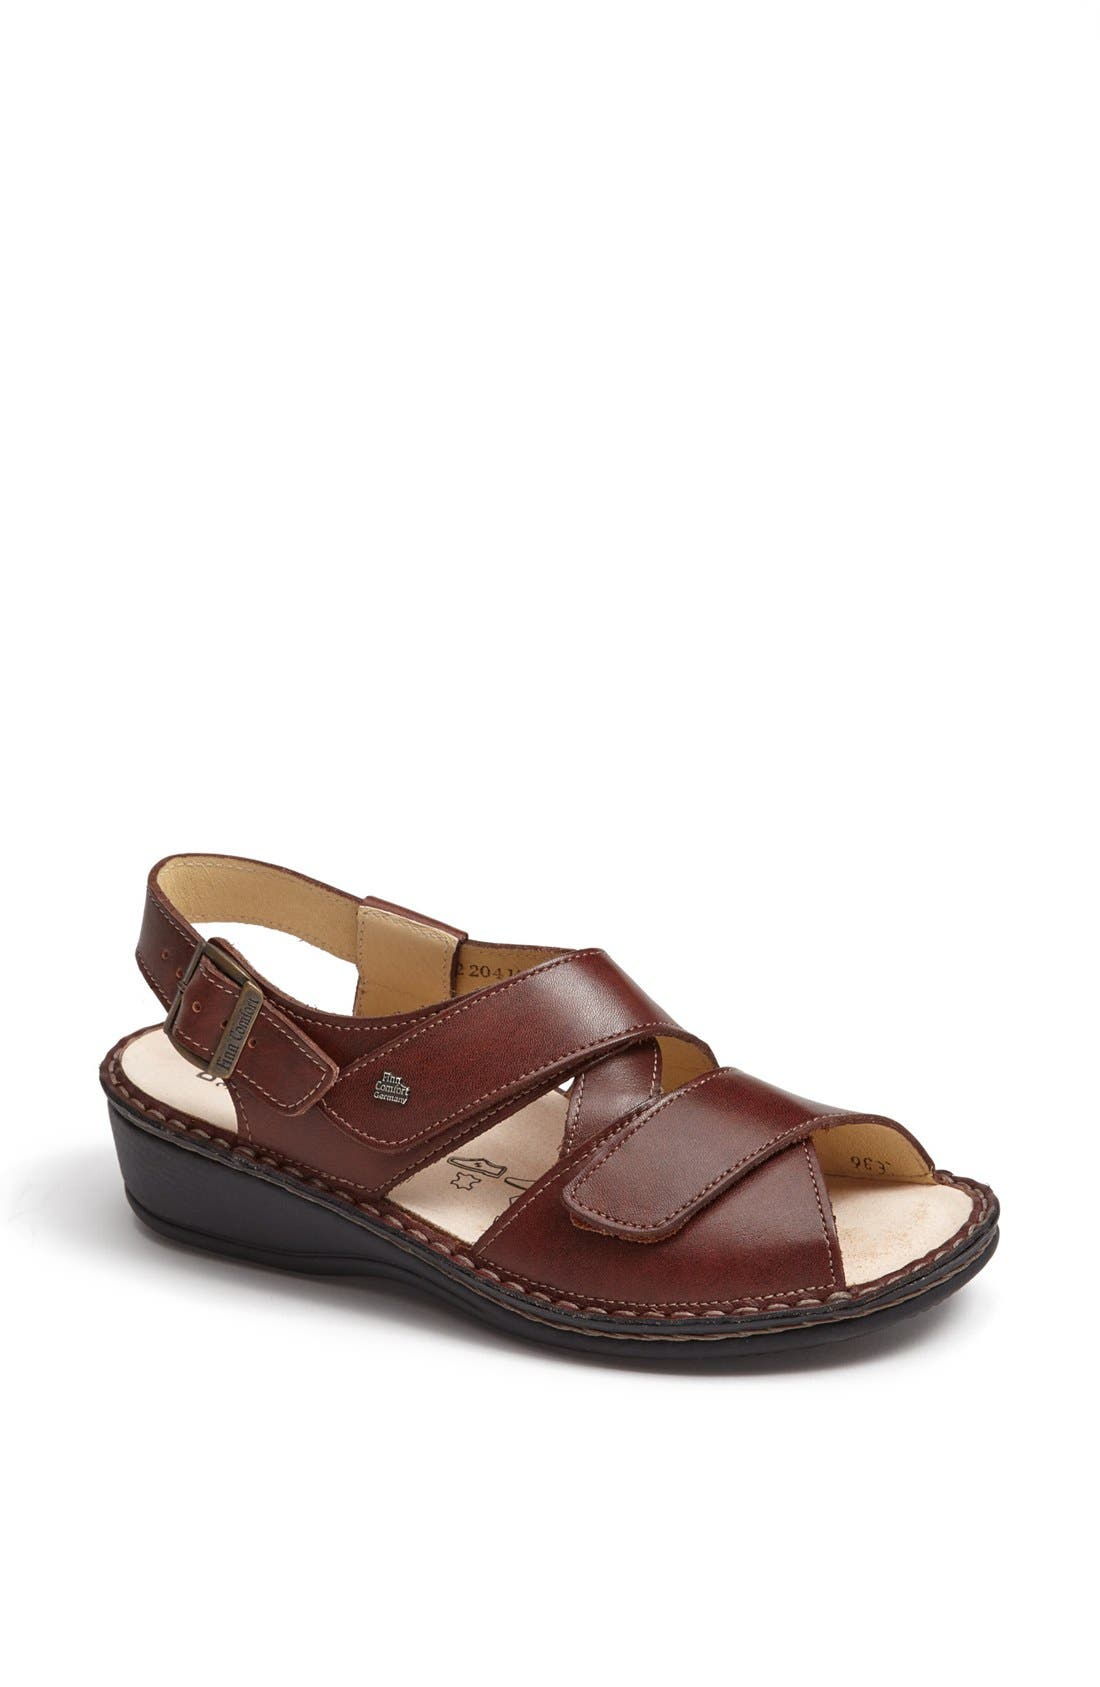 Alternate Image 1 Selected - Finn Comfort 'Jersey' Sandal